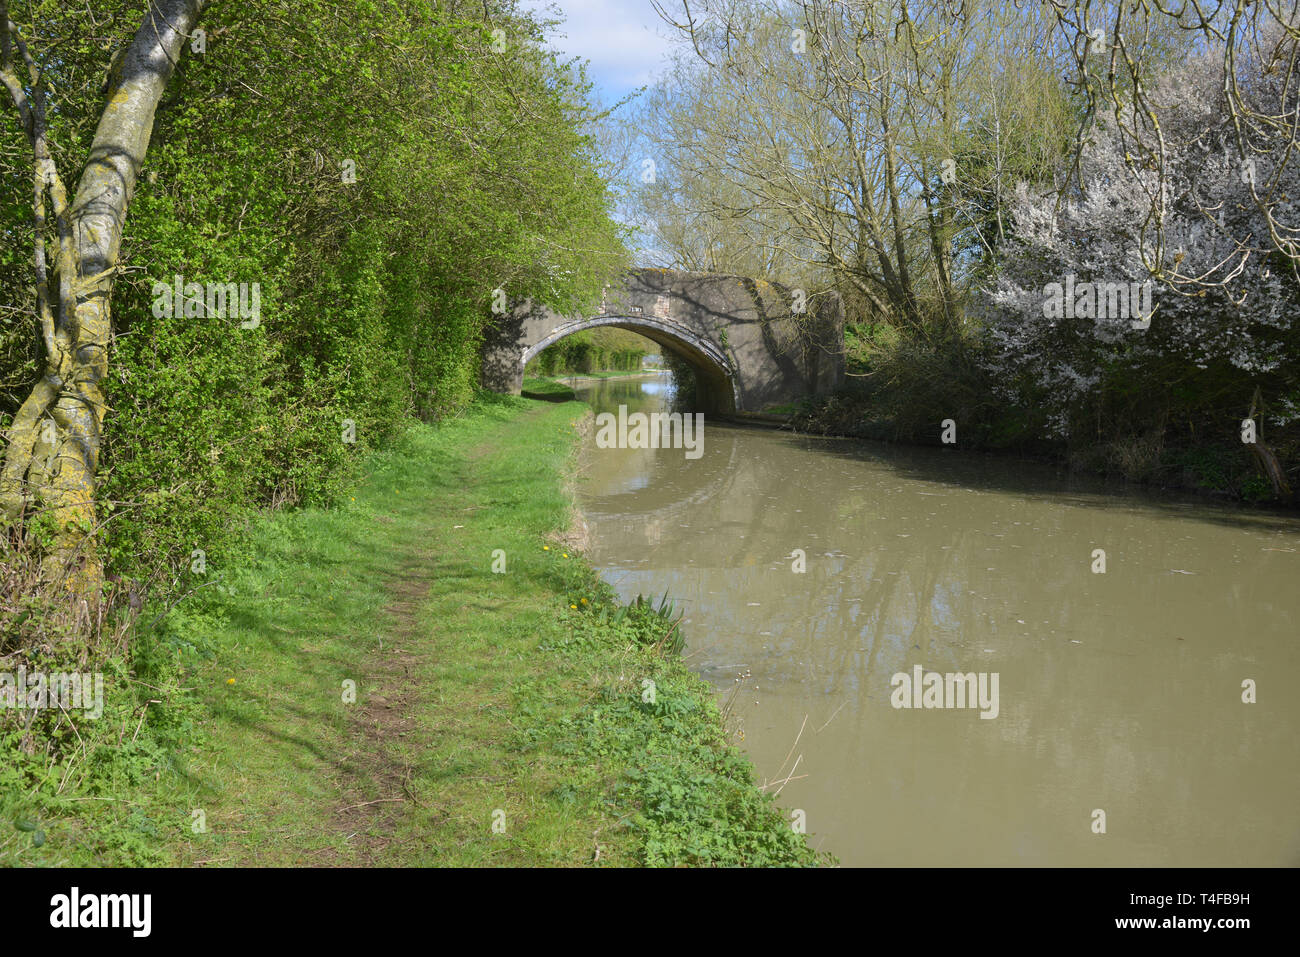 The Oxford Canal meanders through the Warwickshire countryside near the village of Wormleighton Stock Photo